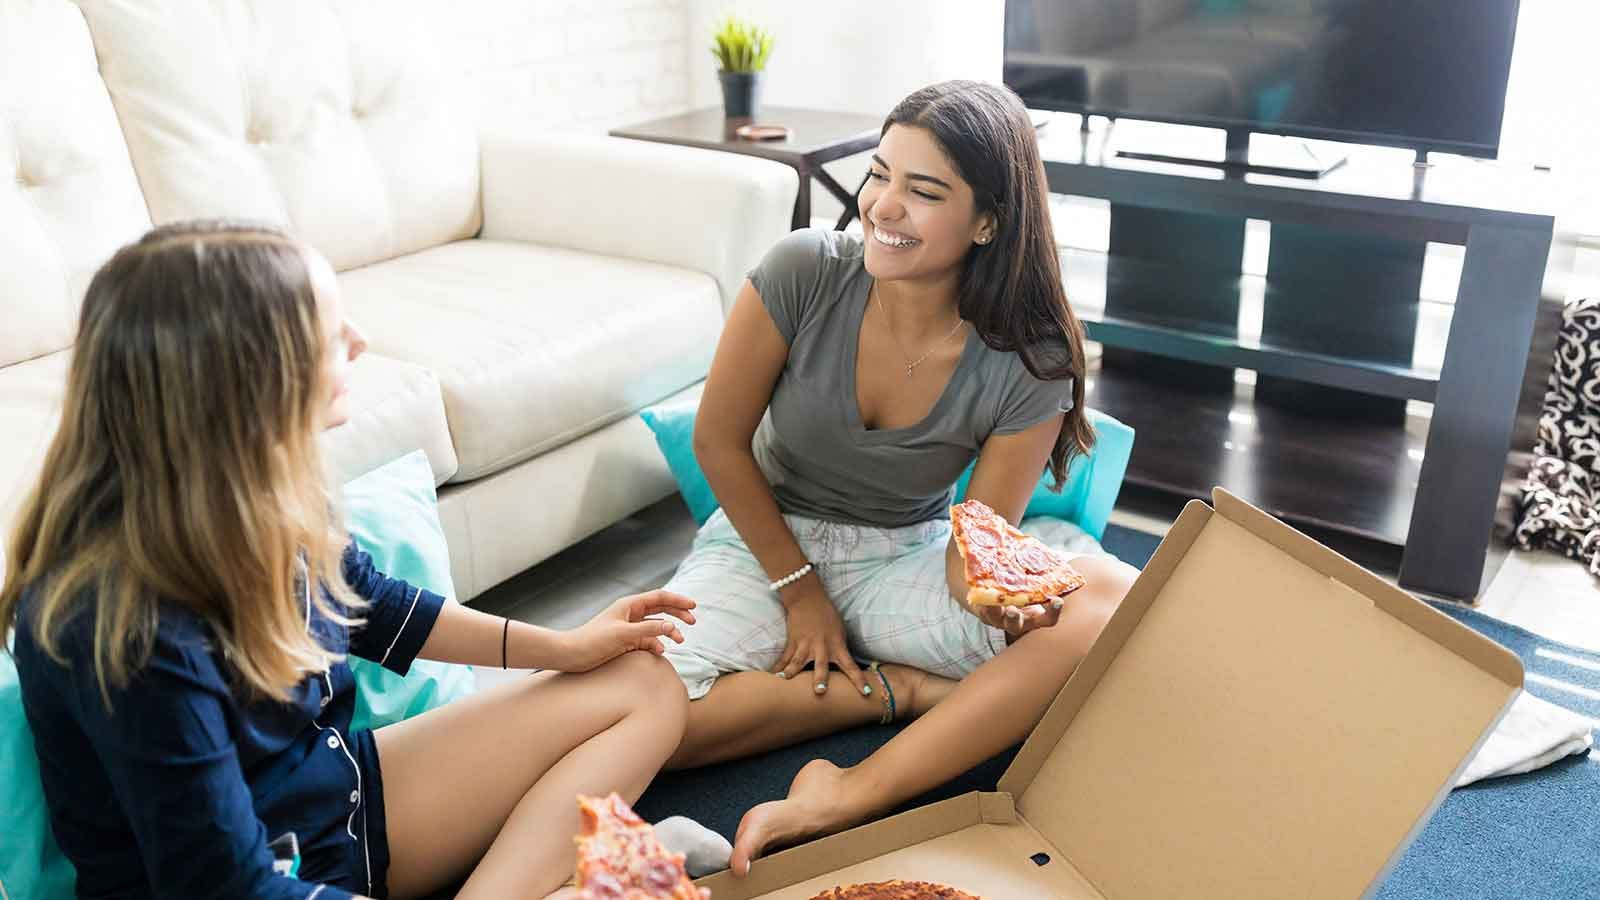 two roommates eating pizza together and laughing